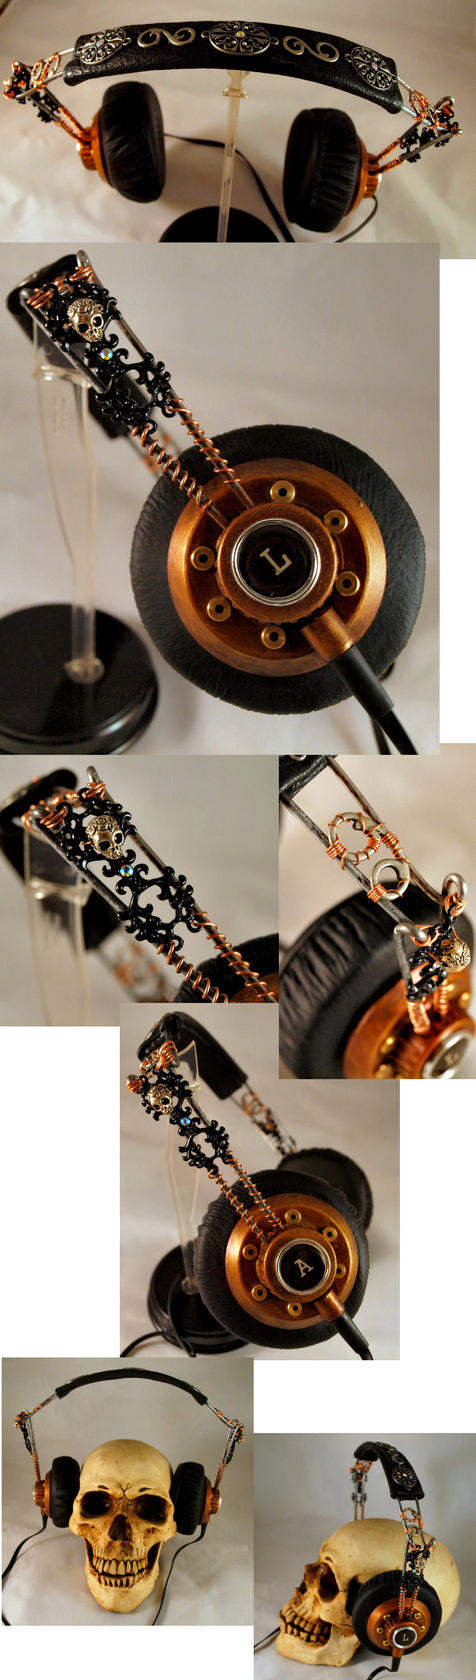 Steampunk Headphones by ajldesign